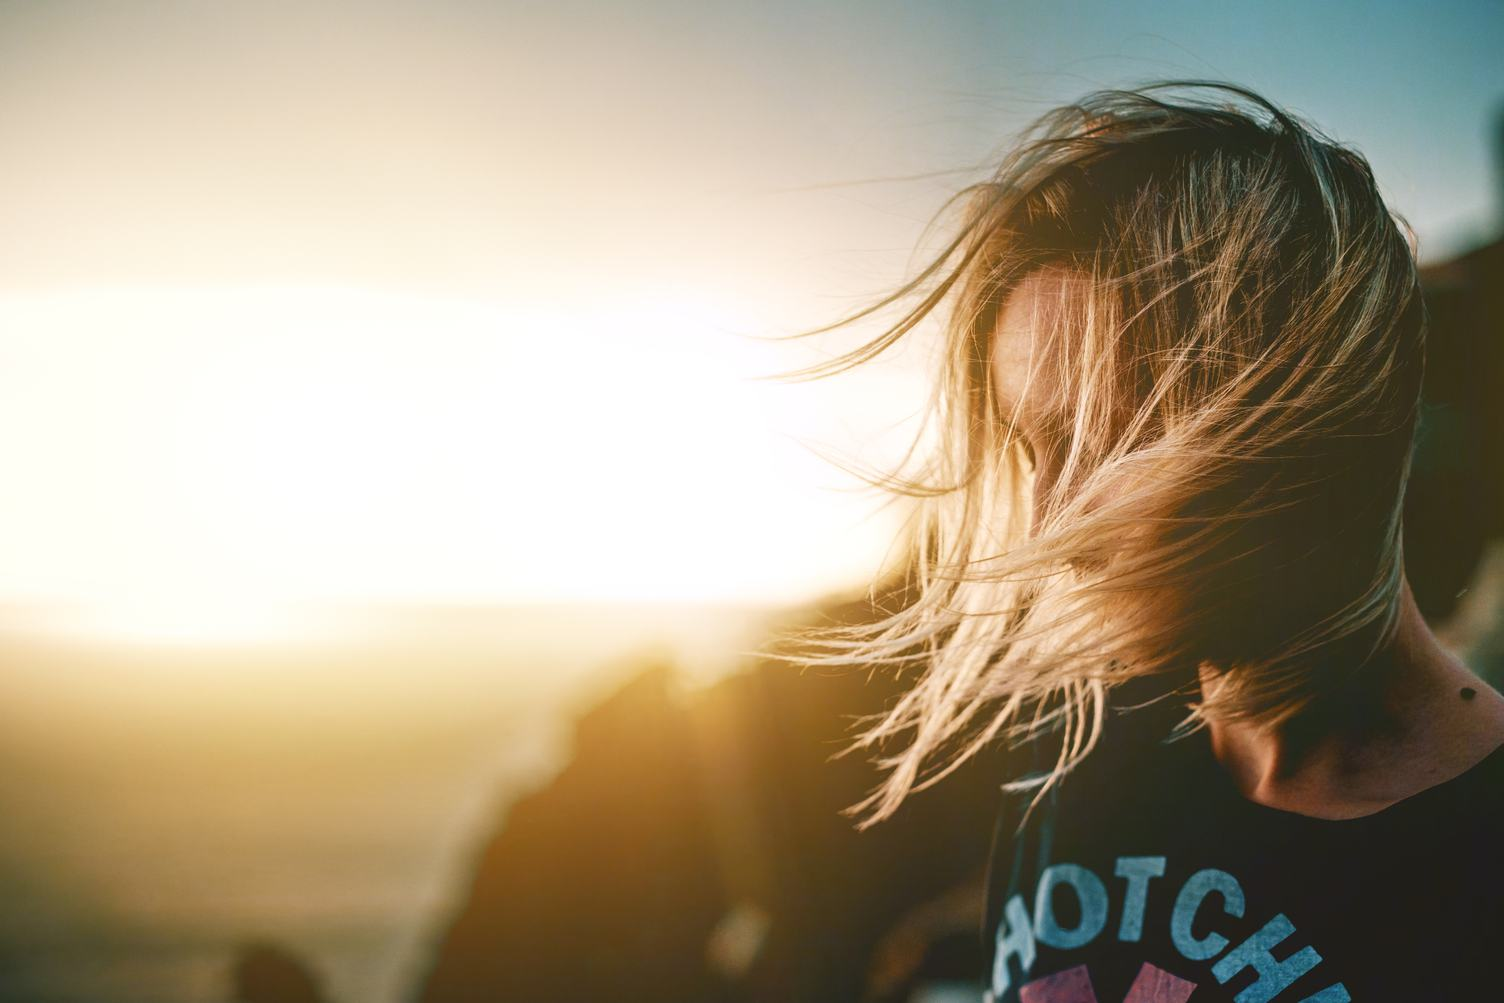 Face of Young Woman Hidden in Wind-Blown Hair